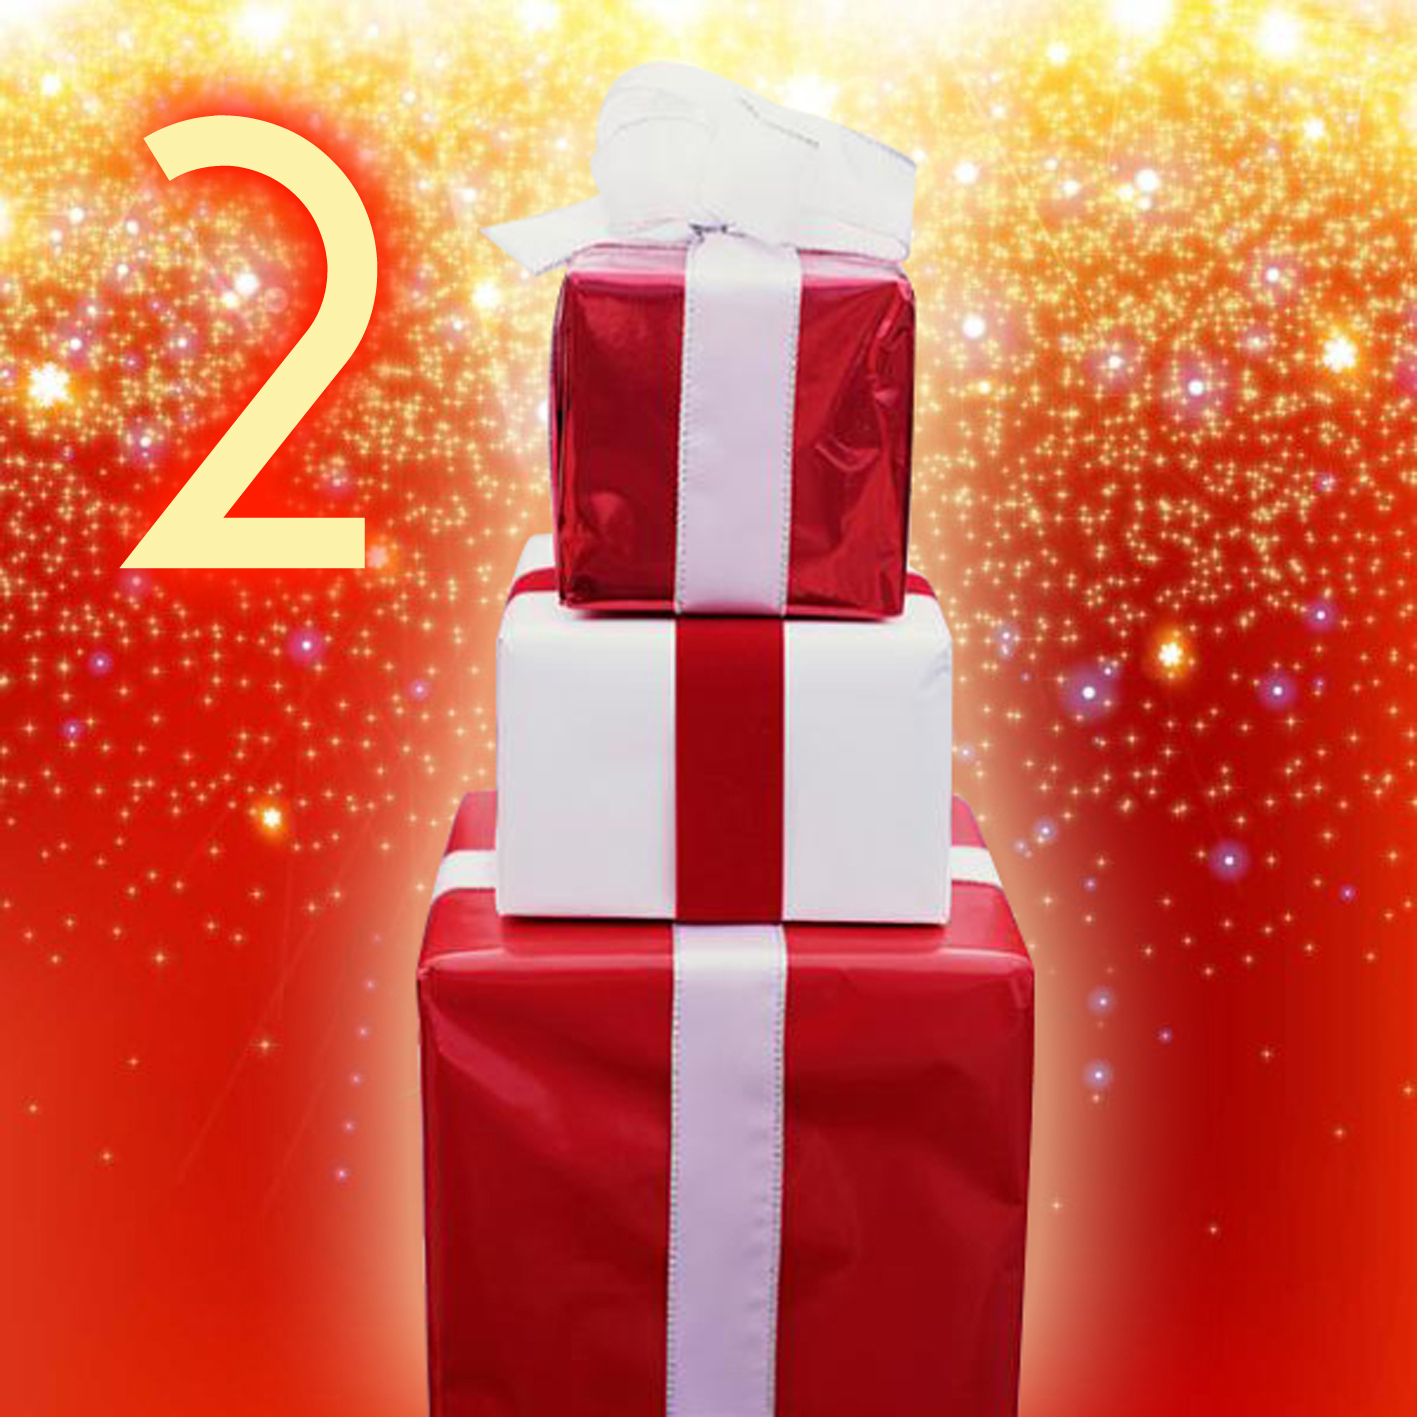 time flies and its only 2 days away from the big celebration - How Many Days Away Is Christmas